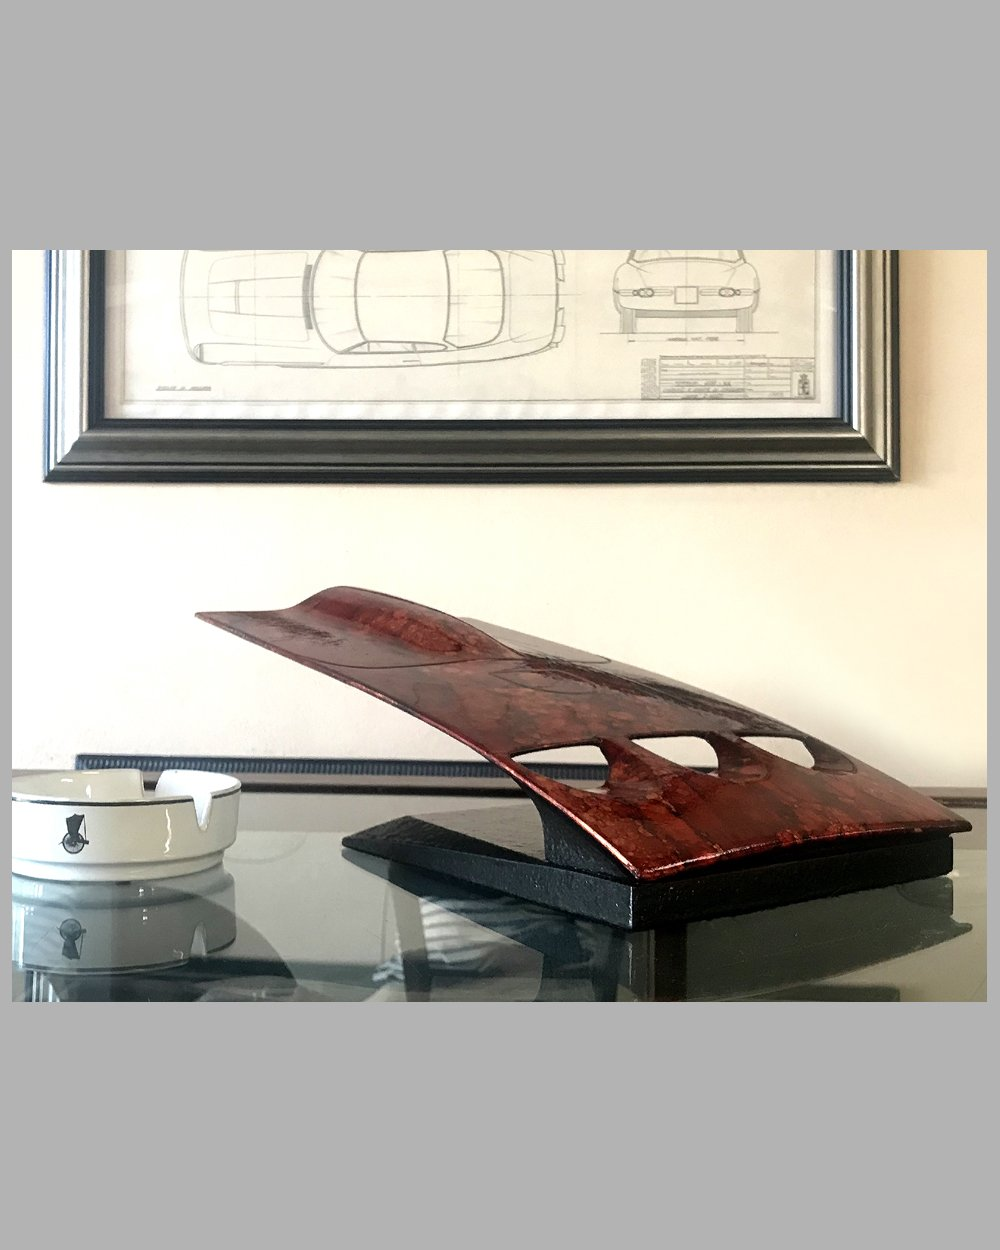 Ferrari 250 GTO hood table sculpture by Dennis Hoyt